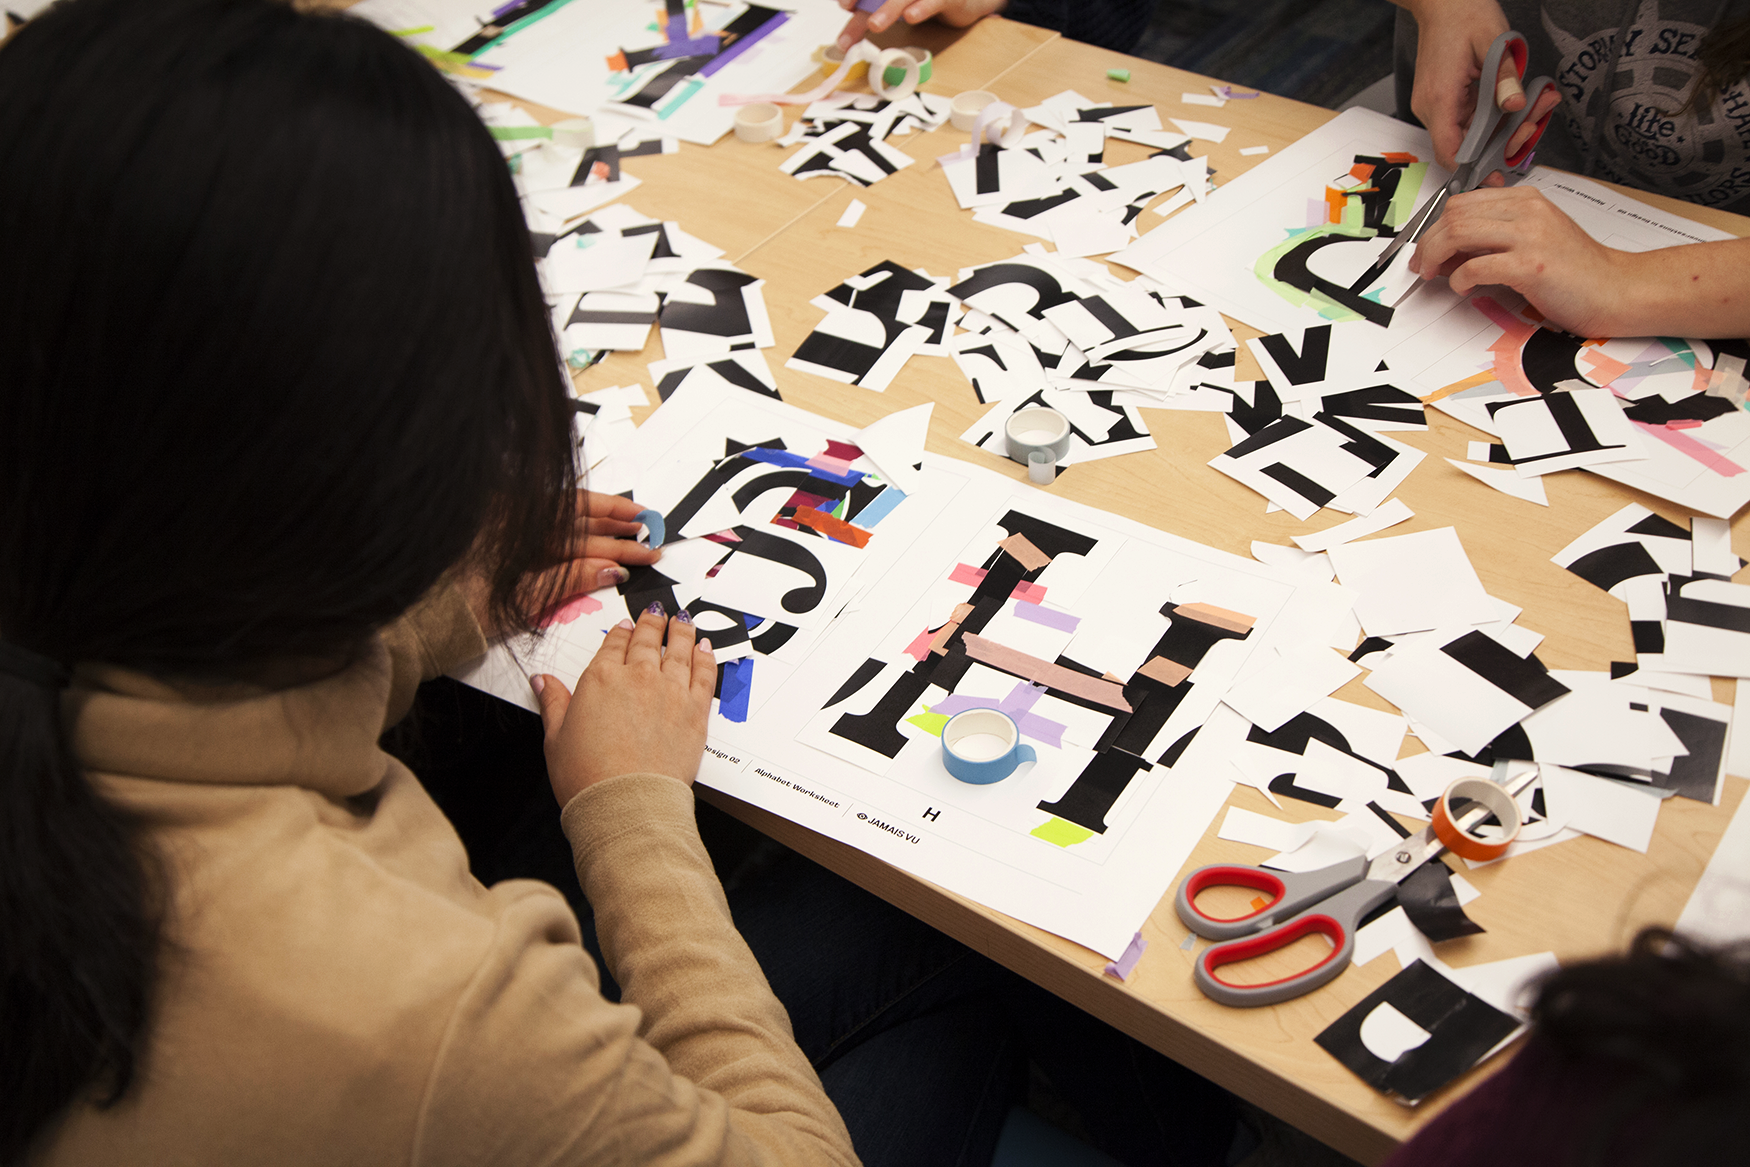 Students were given two minutes to work out their letterforms and 30 seconds to tape them down before they were rotated around.